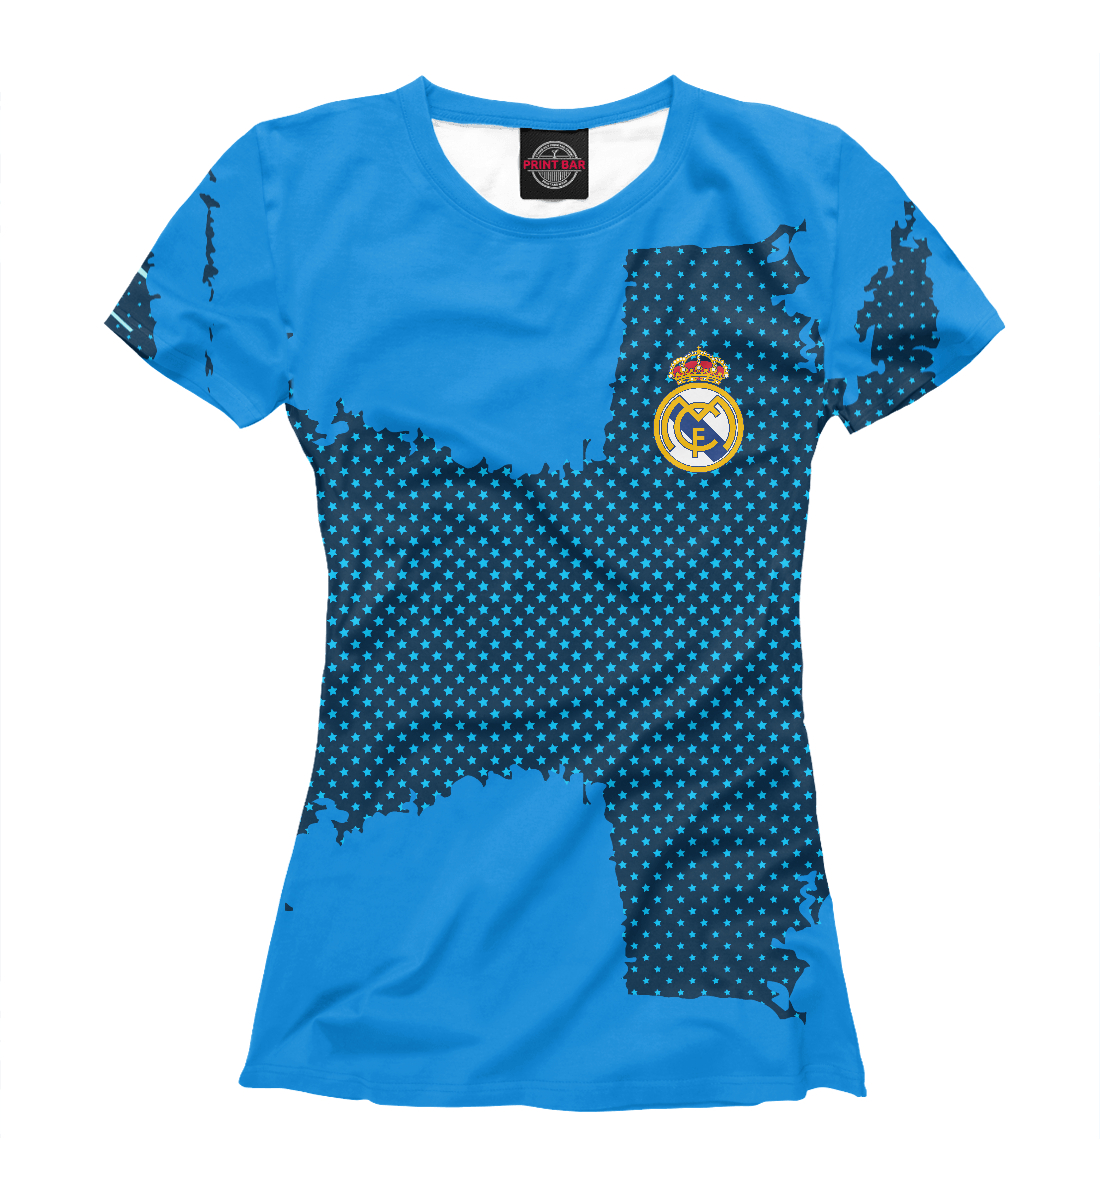 Купить Real Madrid sport uniform, Printbar, Футболки, REA-857092-fut-1